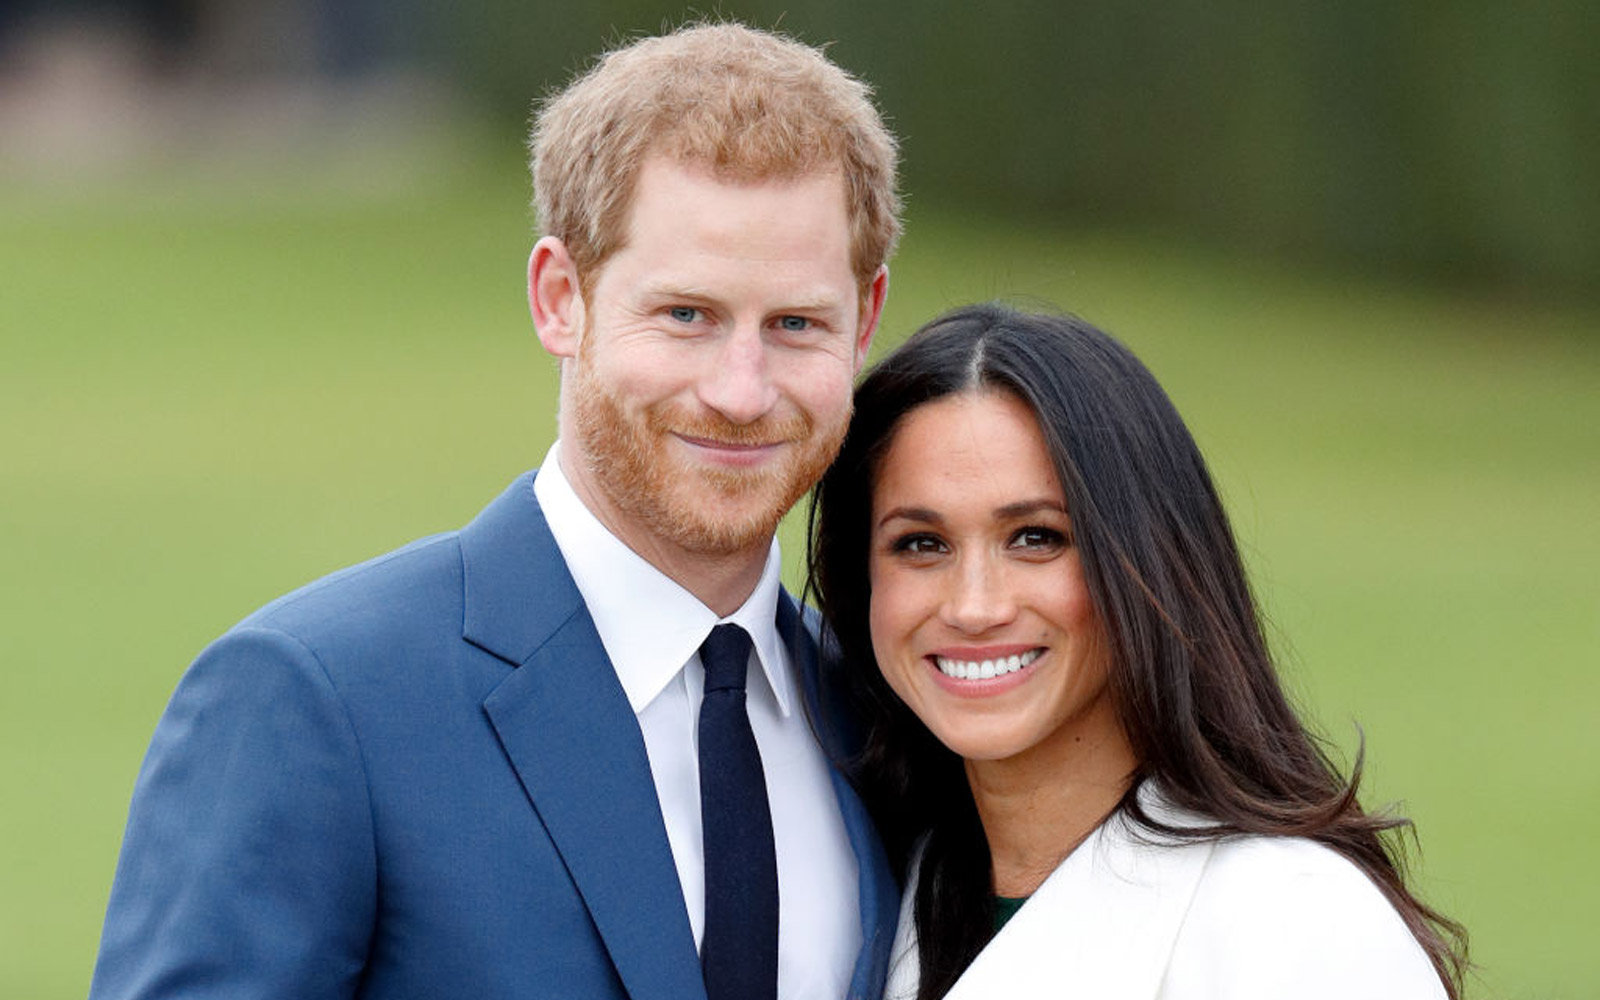 Announcement Of Prince Harrys Engagement To Meghan Markle